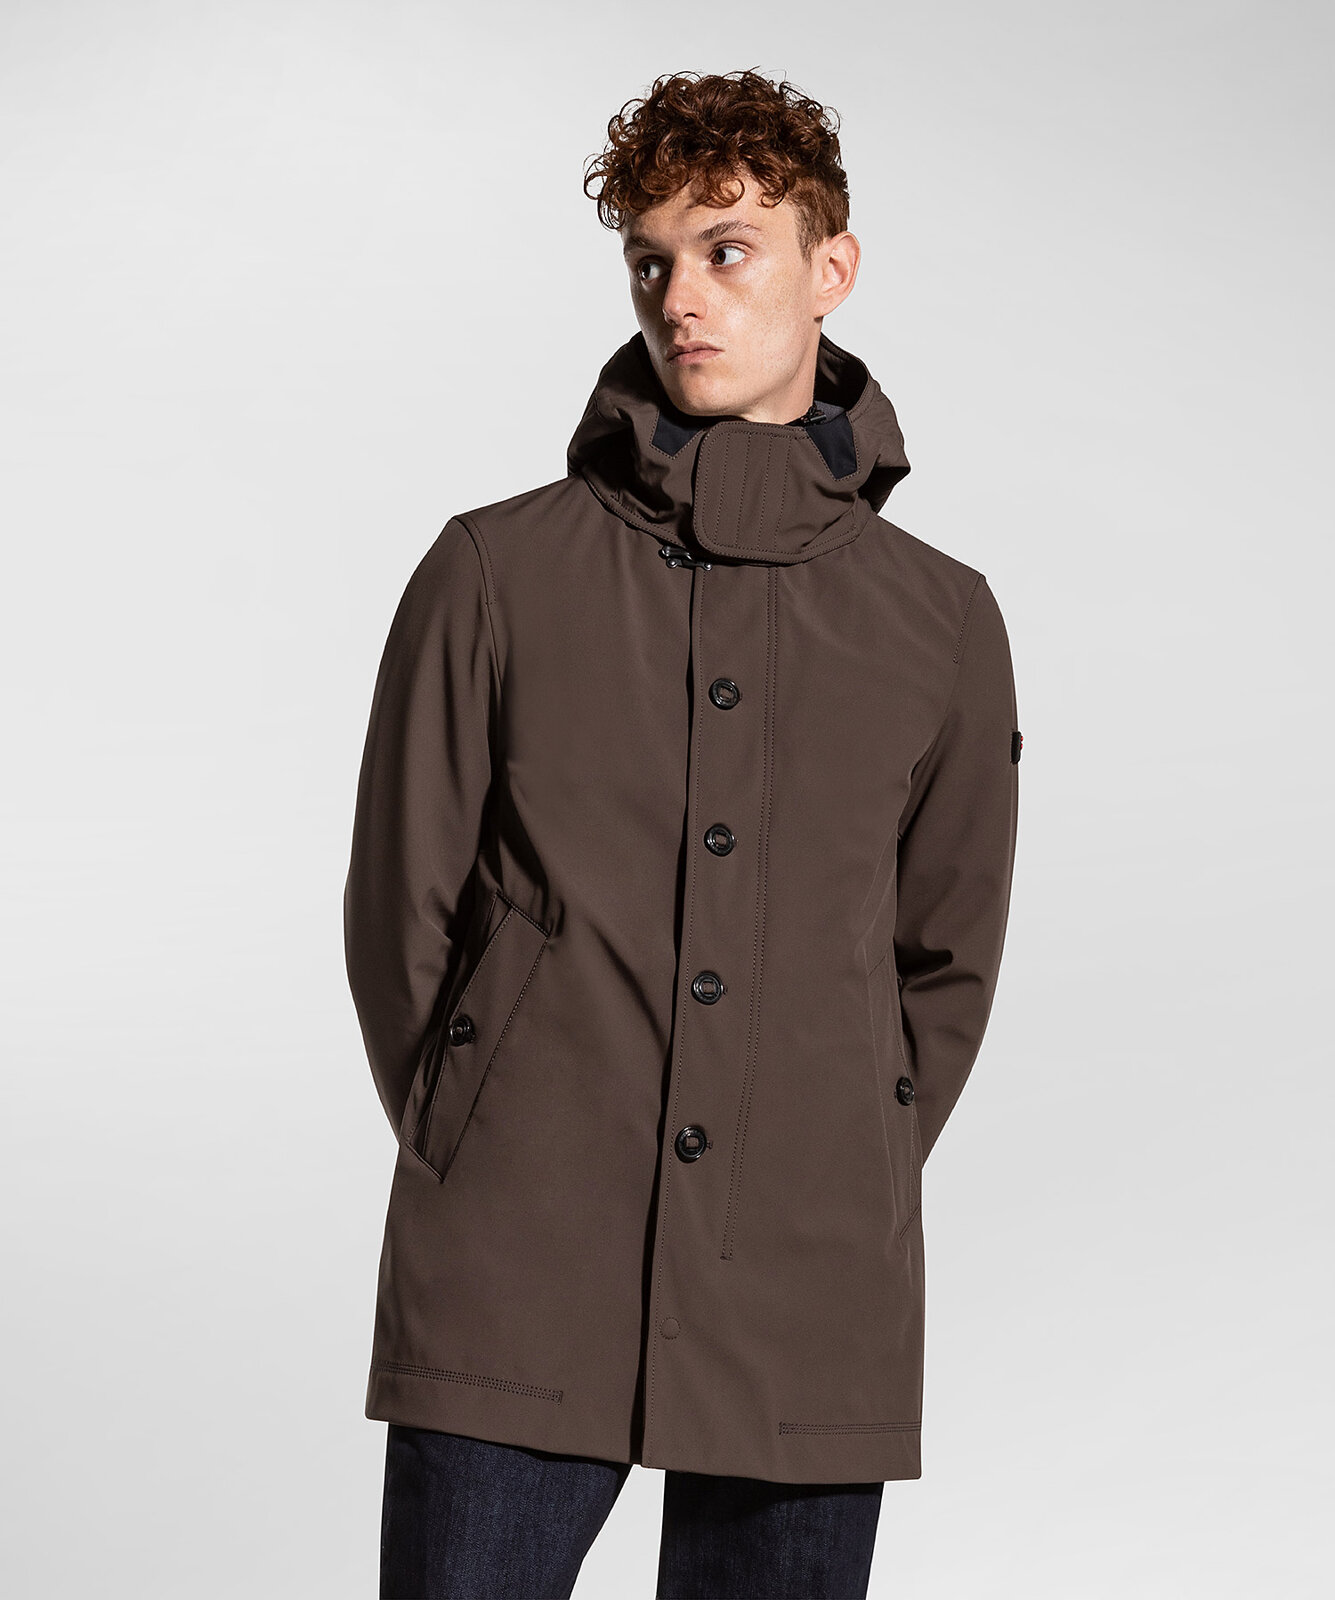 Padded Technical Trench Coat - Peuterey